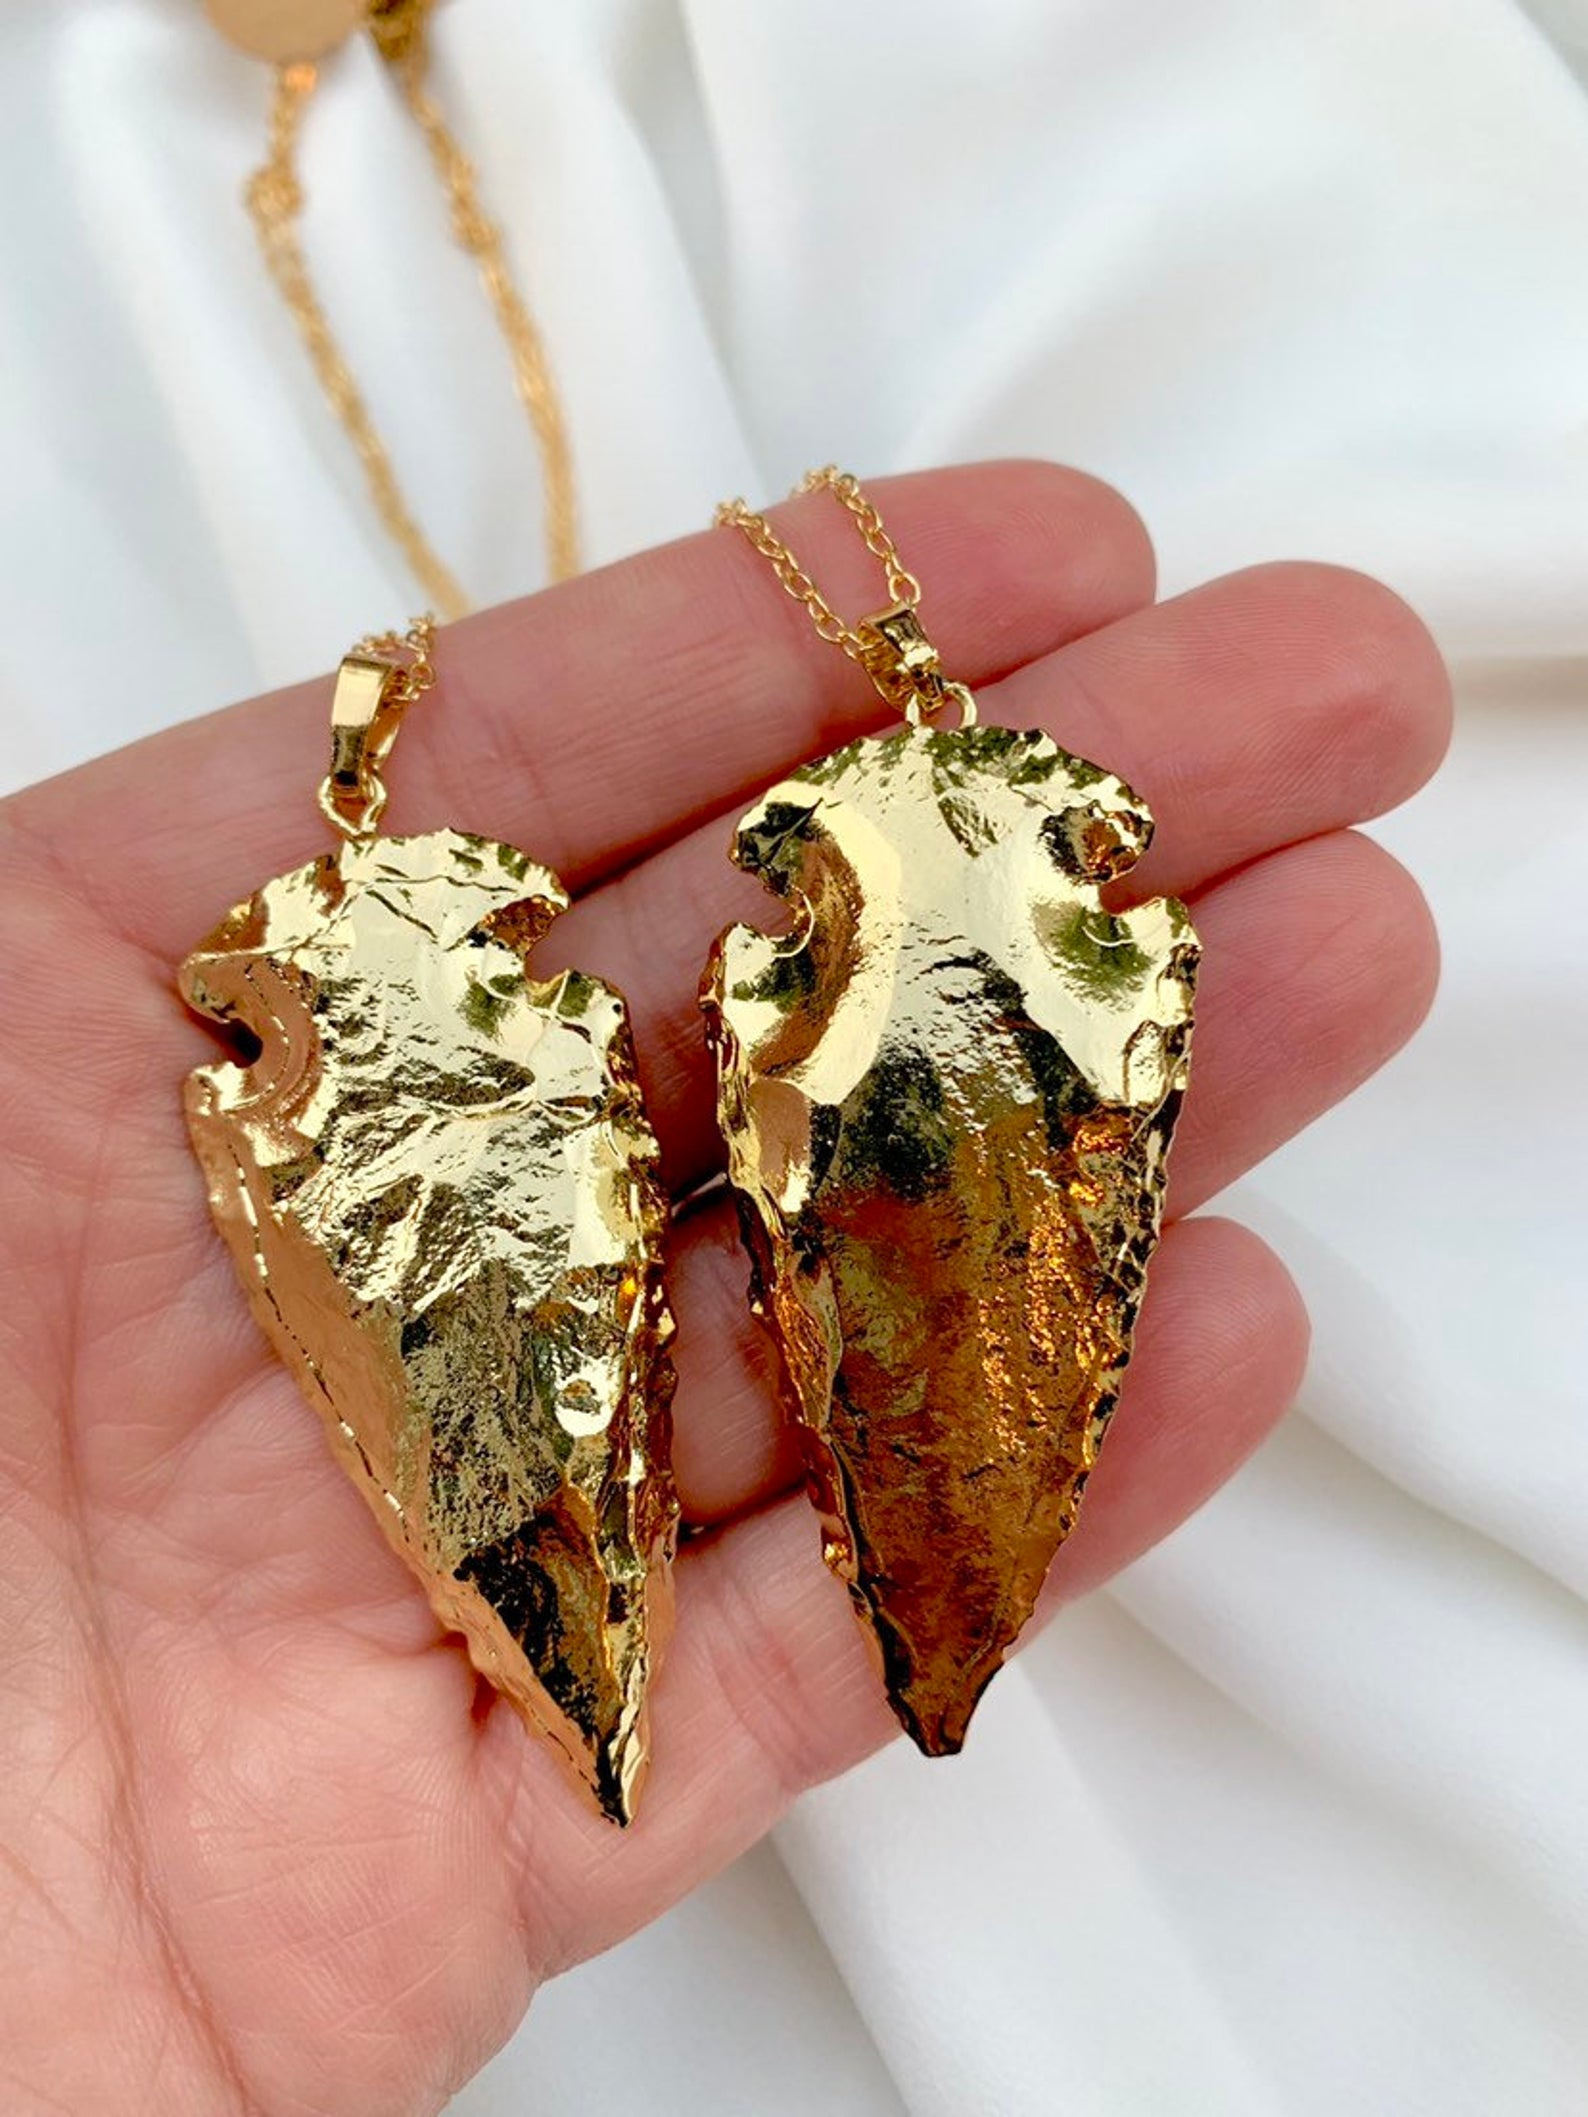 Gold Arrowhead Pendant Necklace